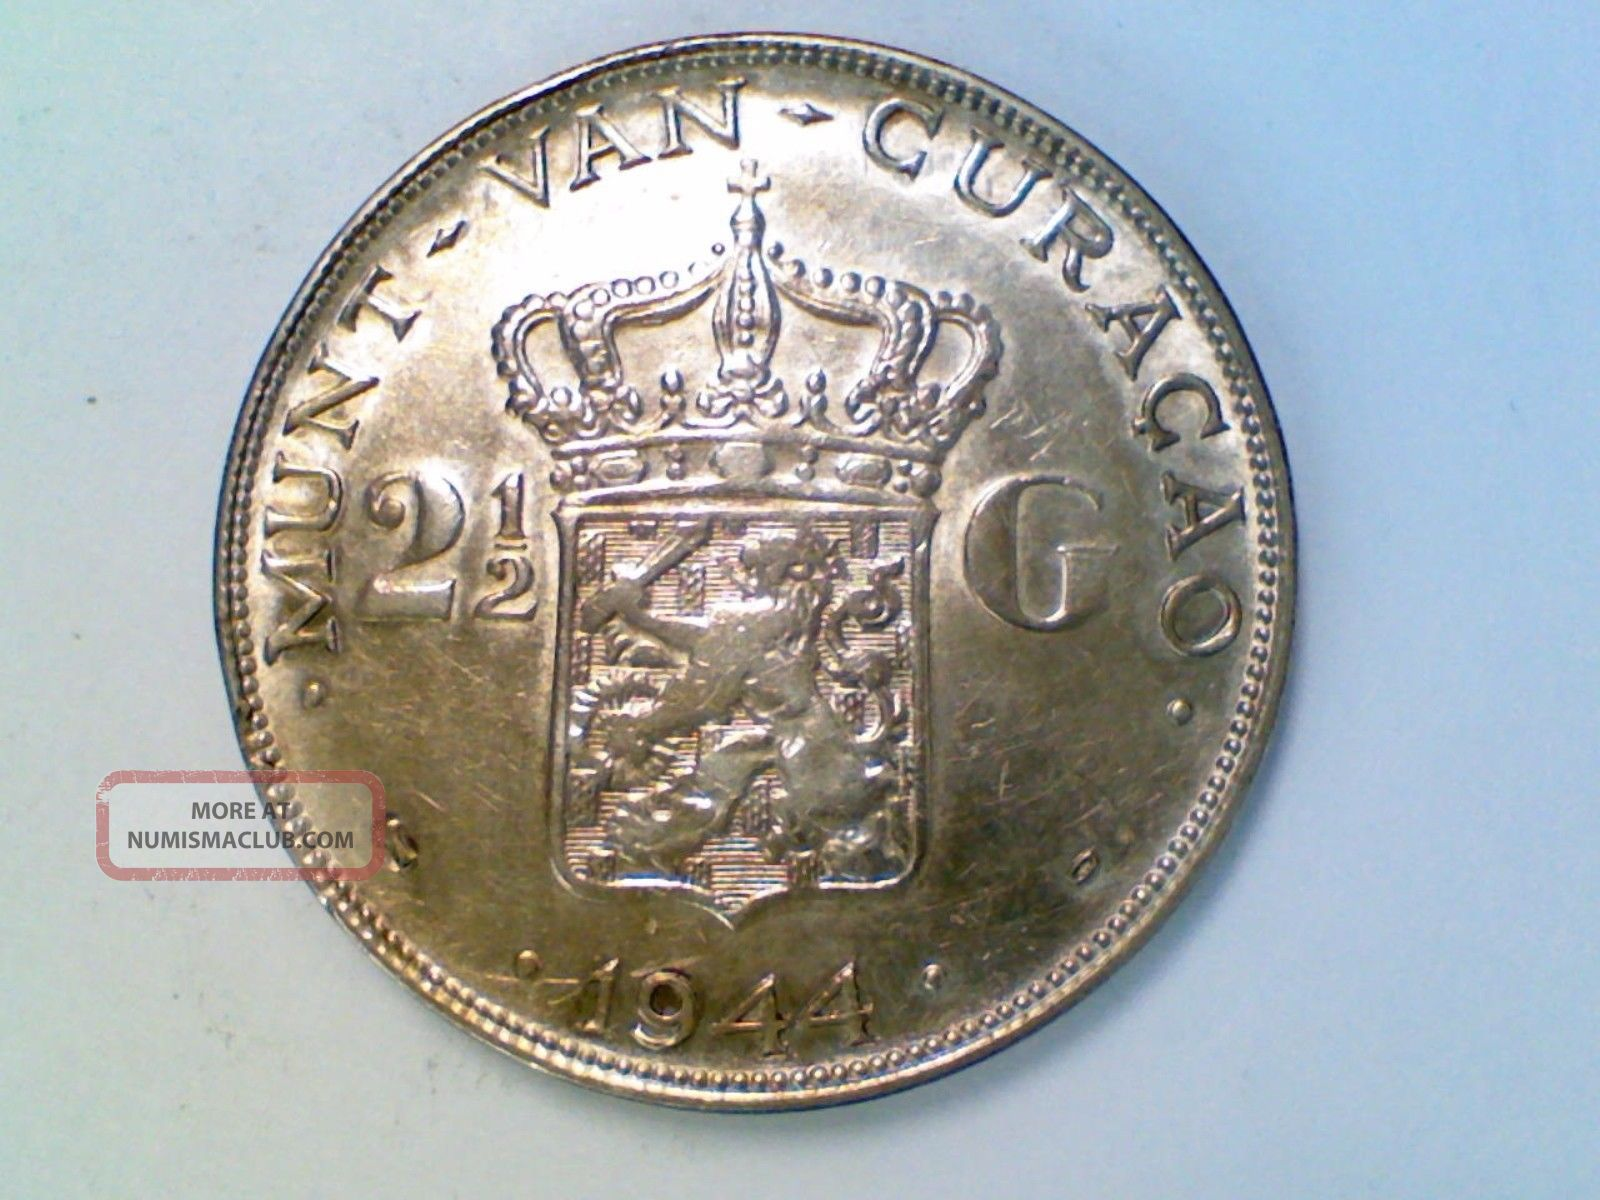 Vintage World Coin 1944 D Curacao 2 1/2 Gulden Silver Ak28 Other Coins of the World photo